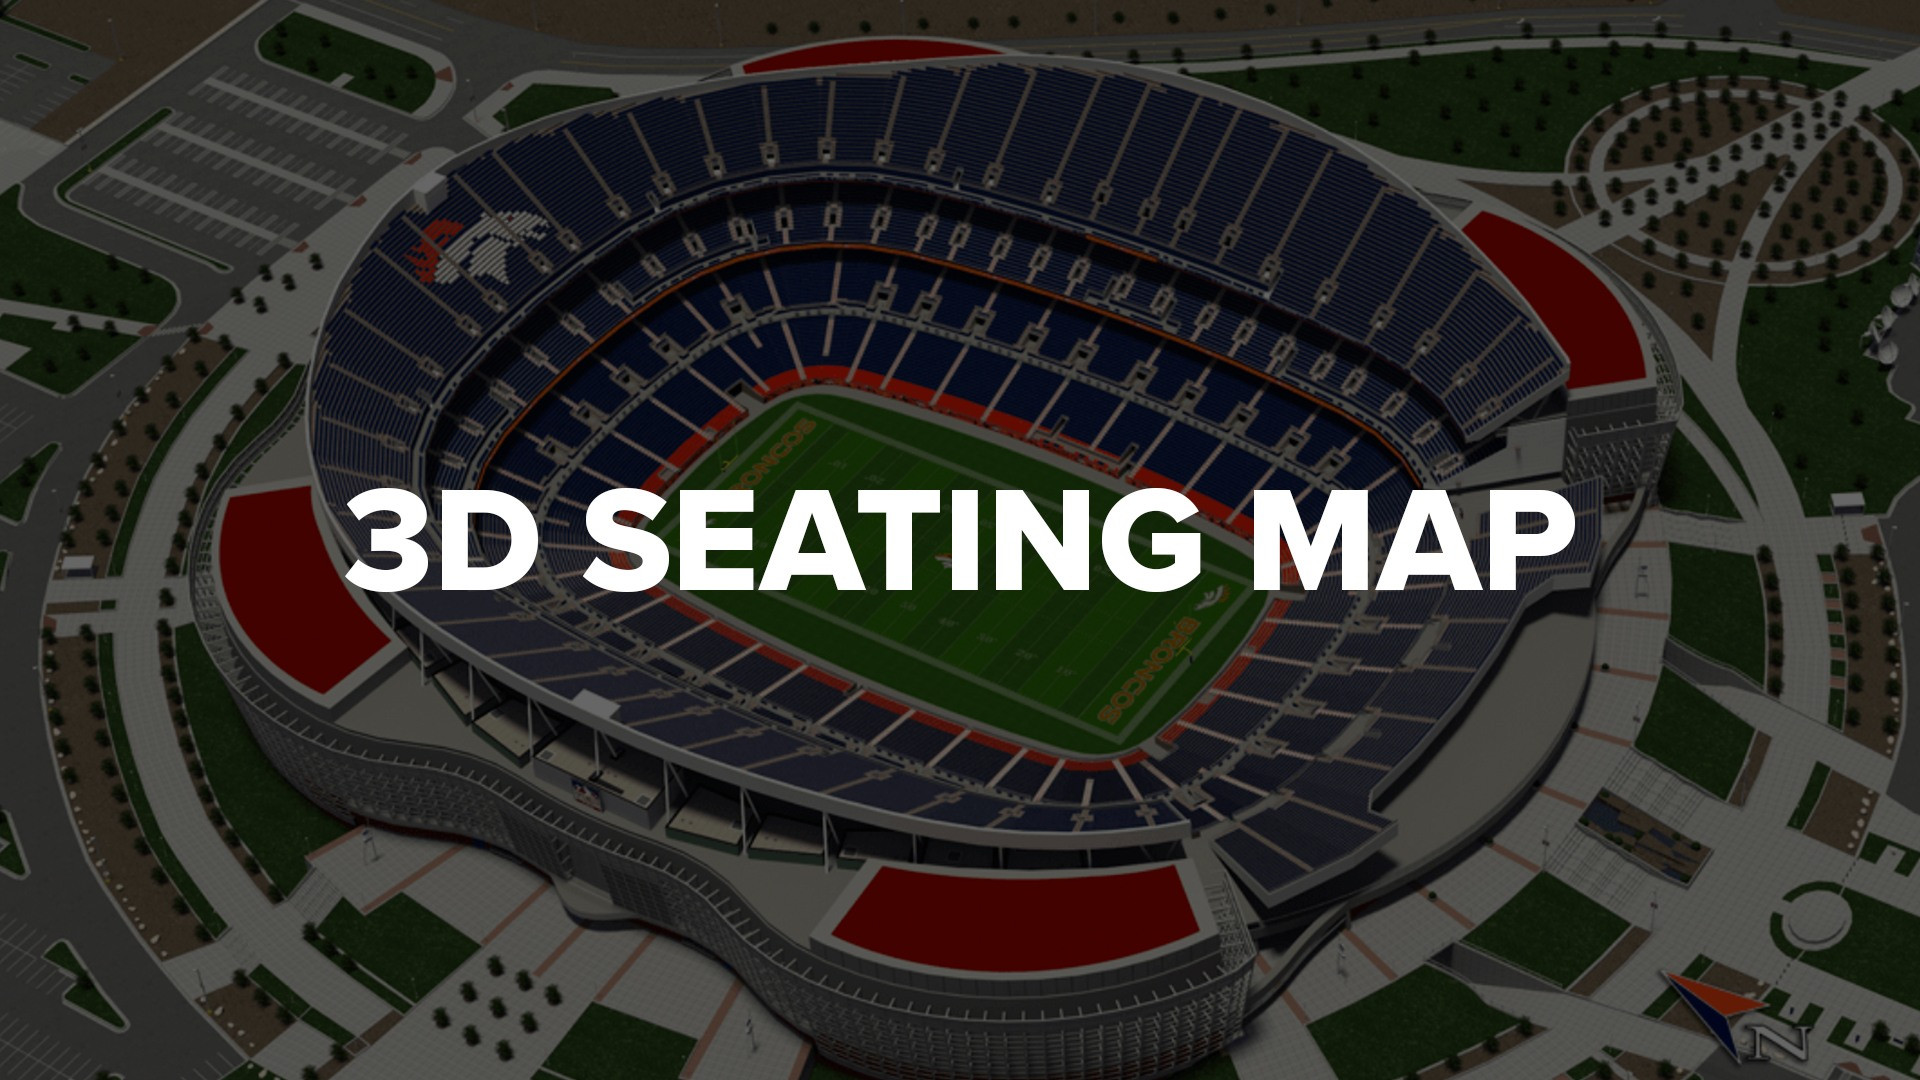 3D Seating Map